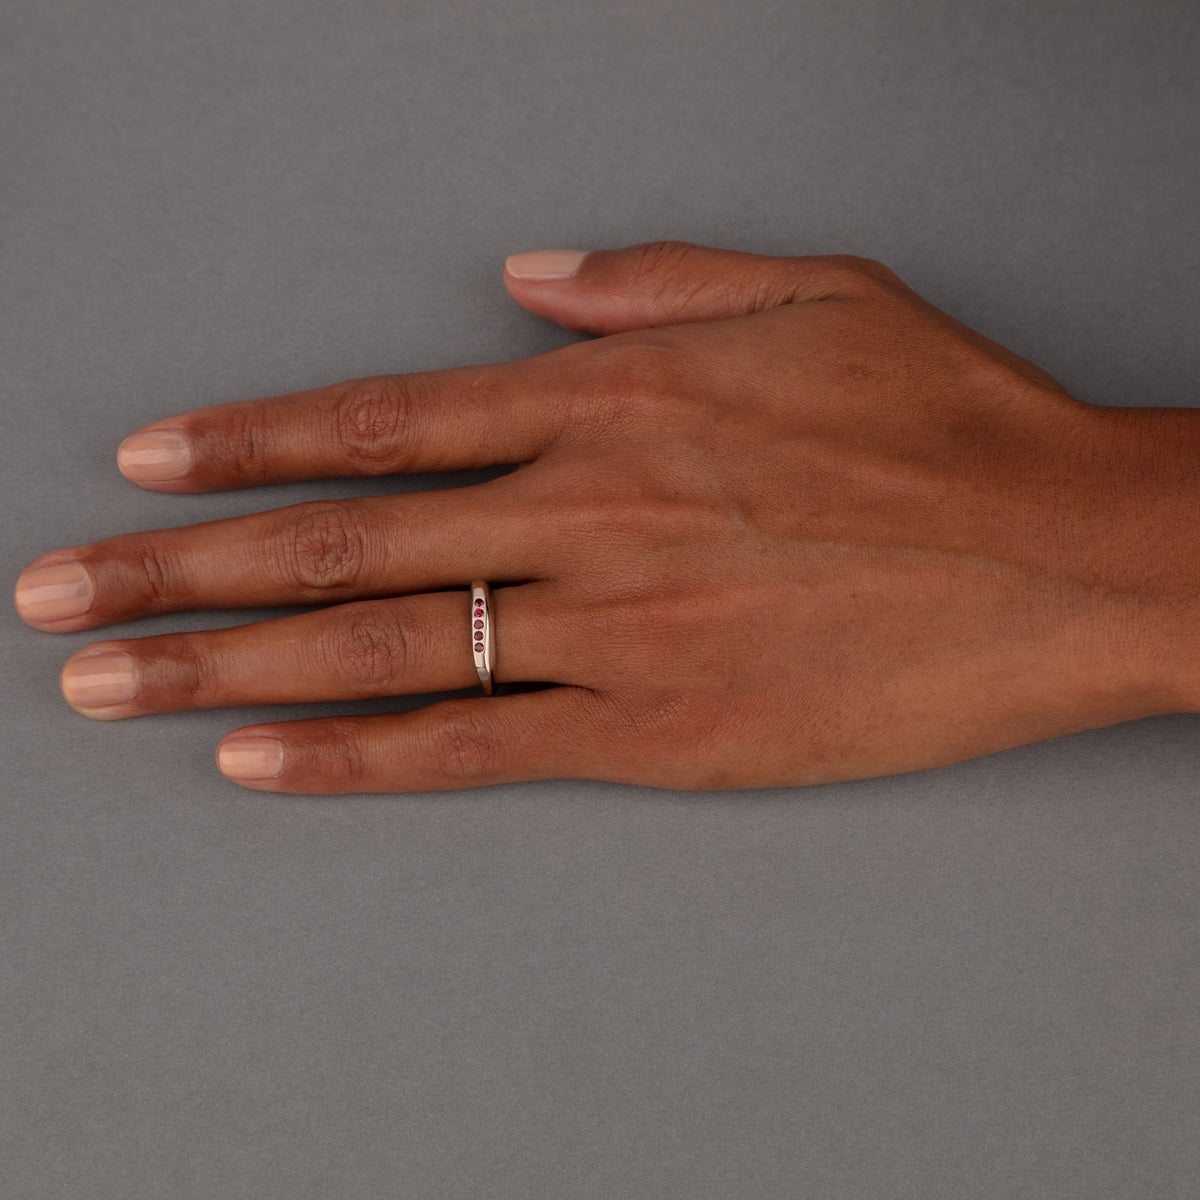 CELEBRATION RINGS Birth Ring in 18ct White Gold